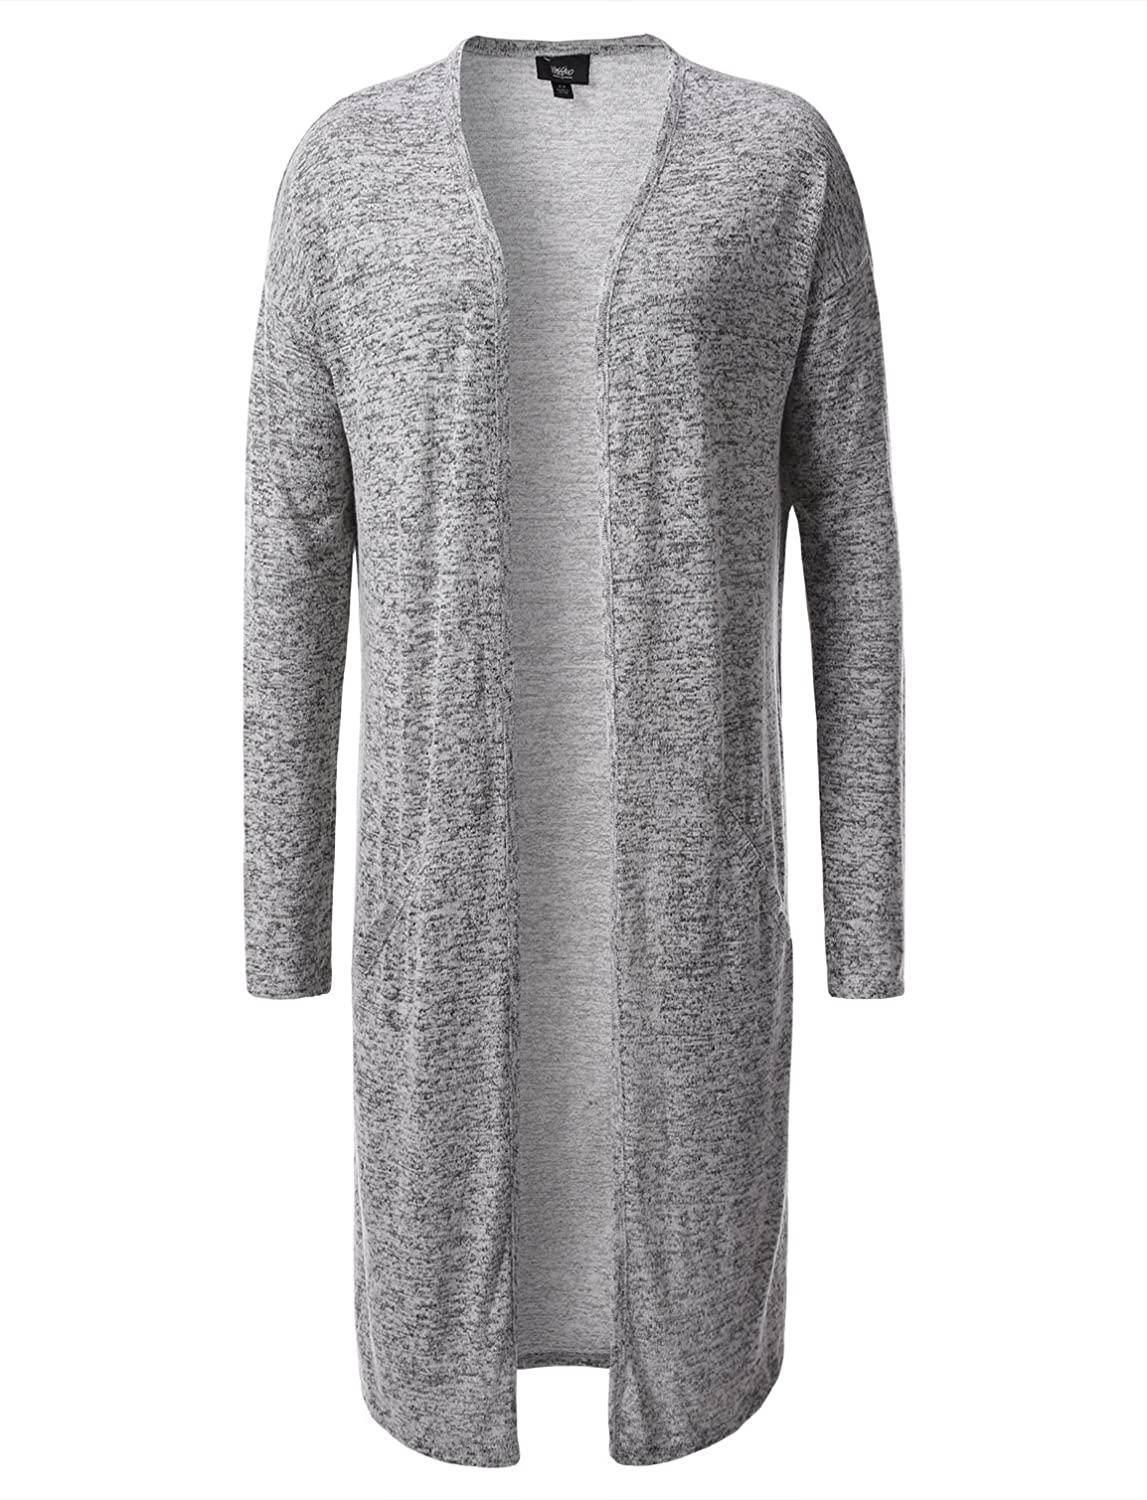 Mossimo Women's Knit Duster Long Open Cardigan (Small, Black/White ...